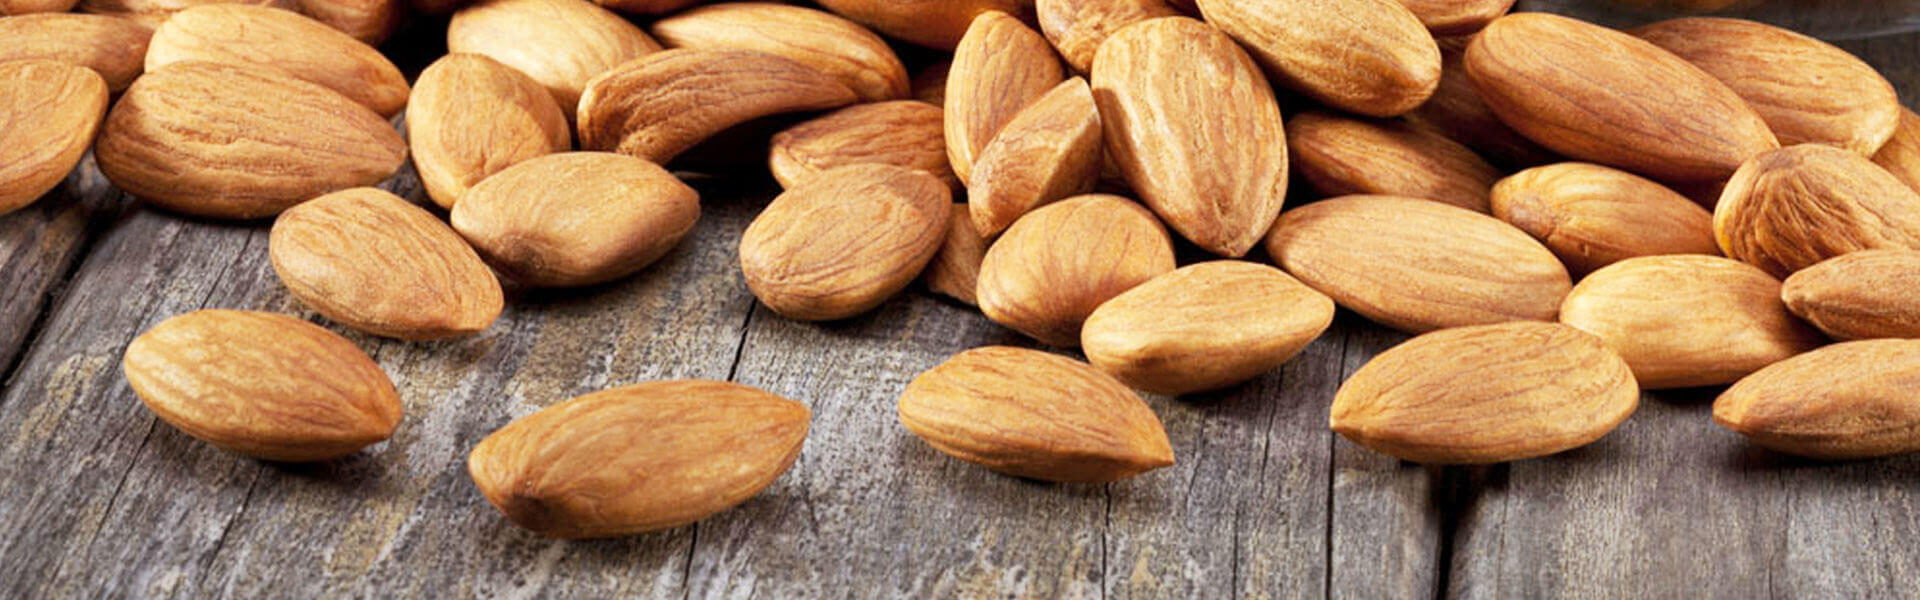 Buy california almonds online